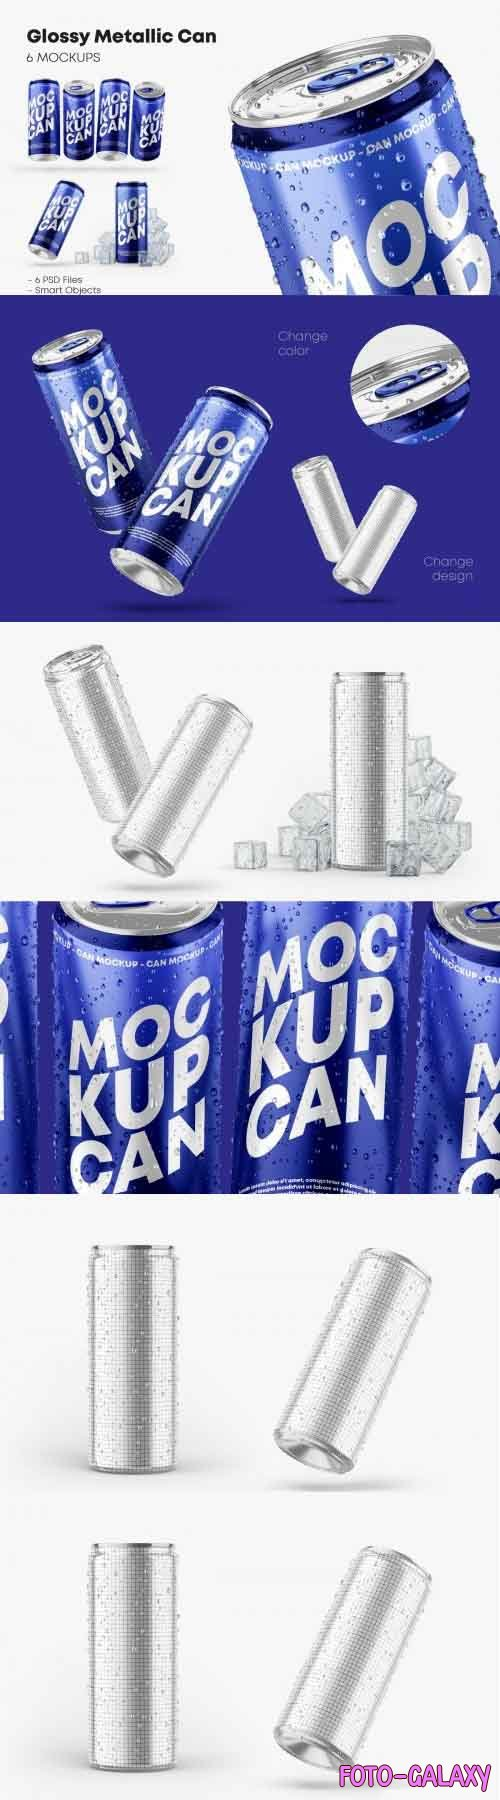 Glossy Metallic Can Mockup Set